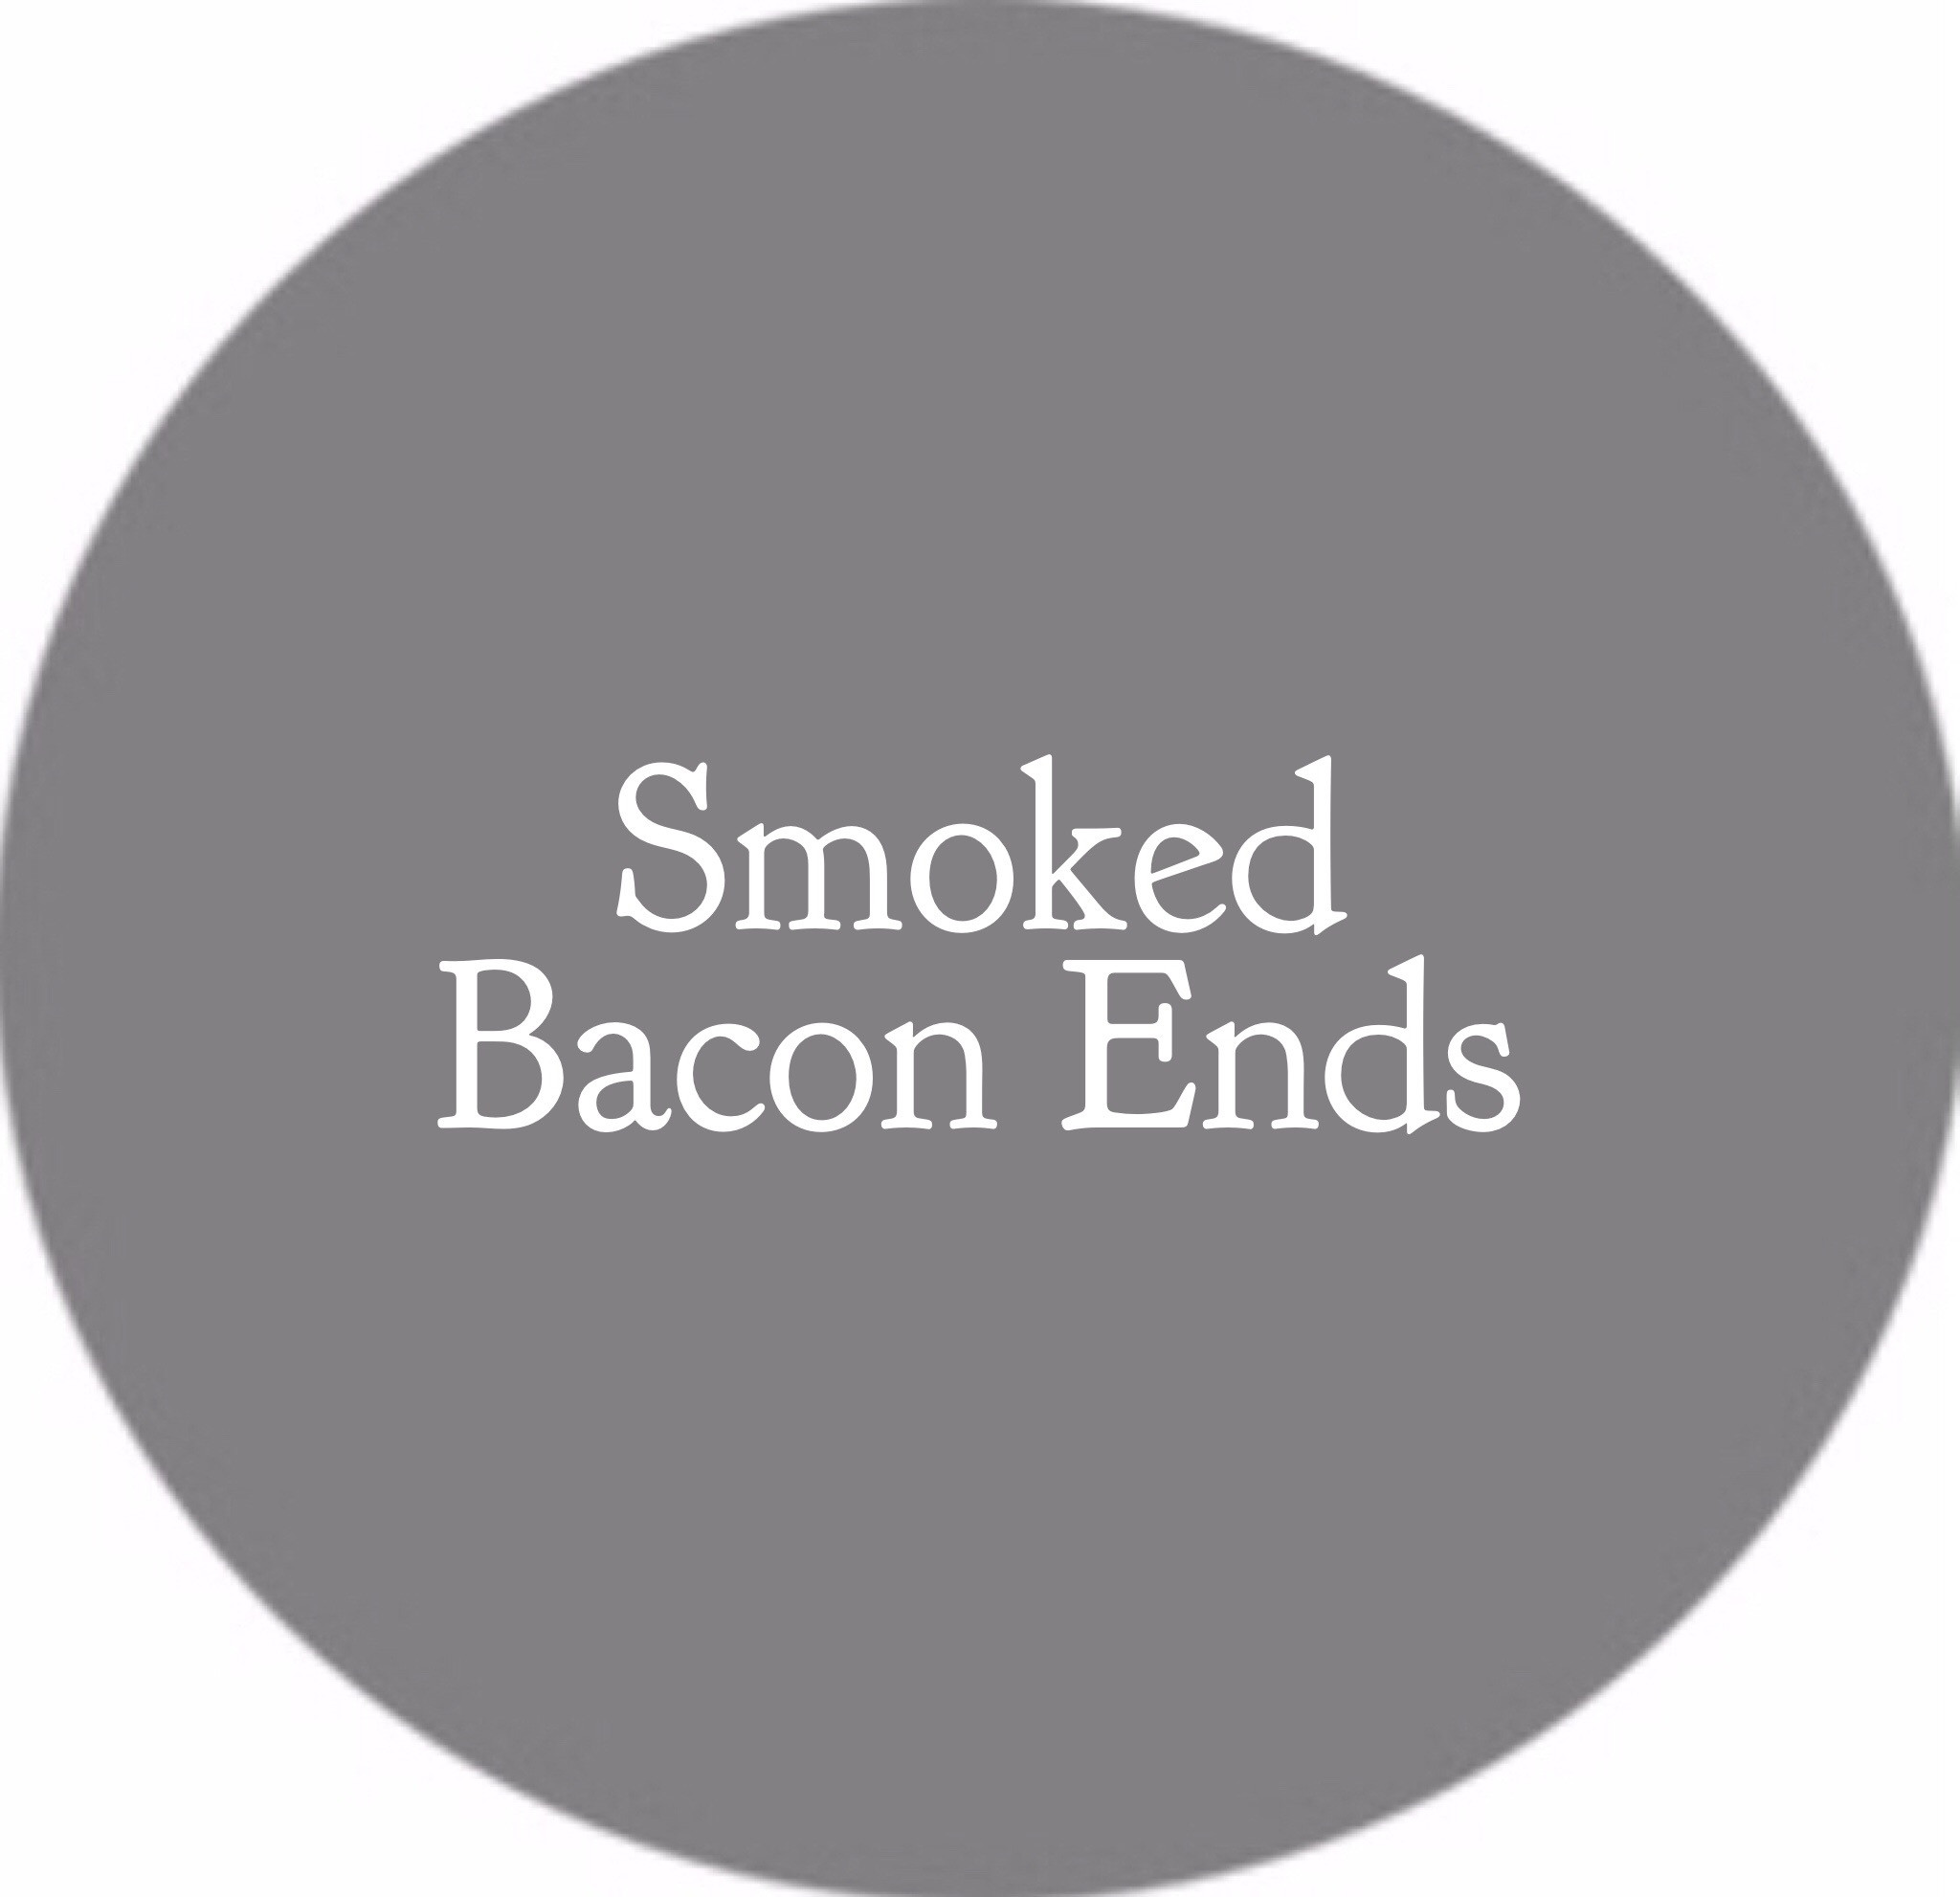 Smoked Bacon Ends